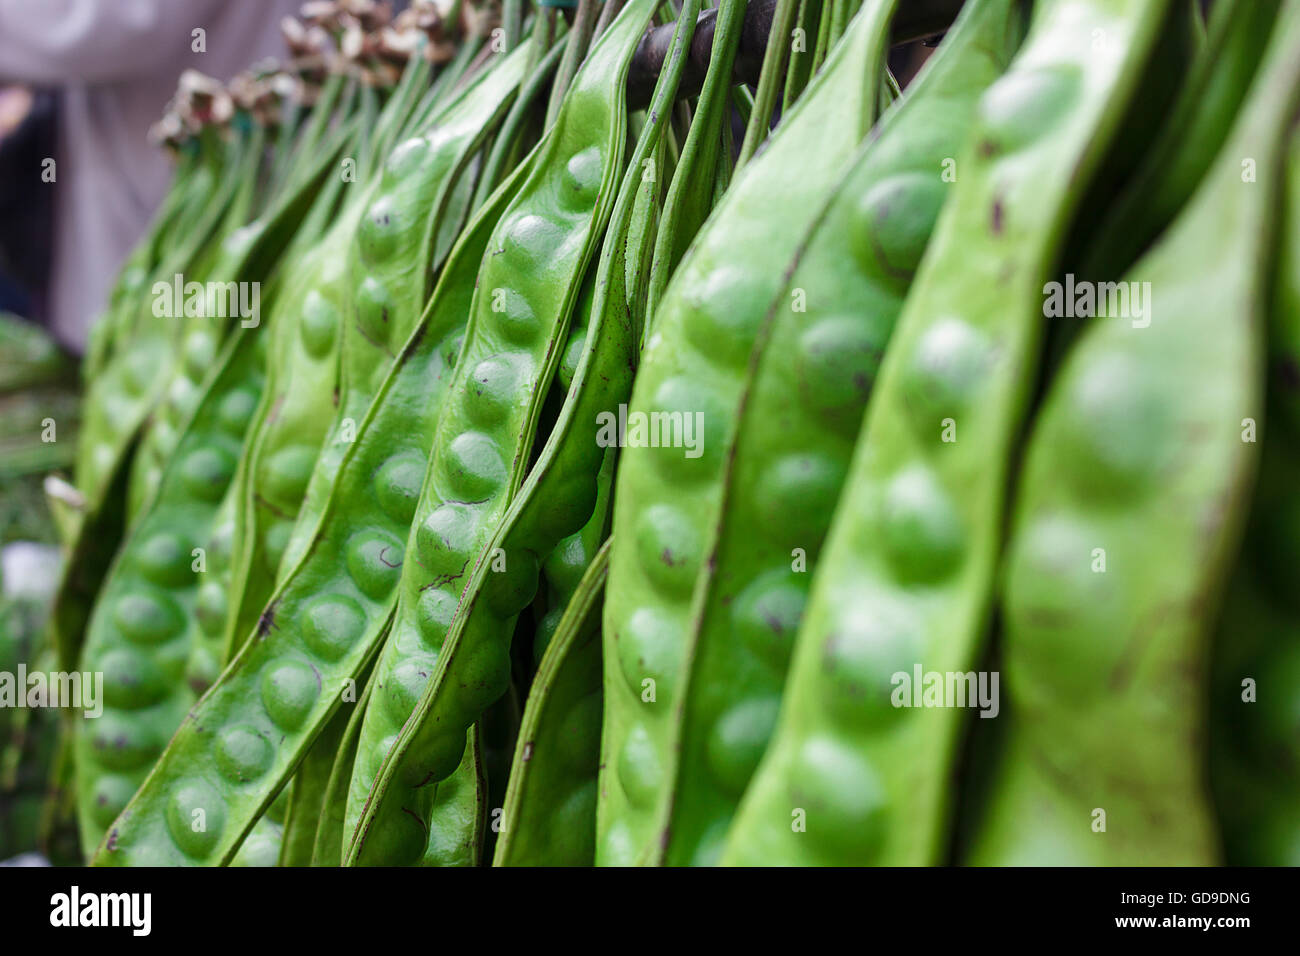 Sato is a plant used as food ingredients southern Thailand has a very pungent smell - Stock Image